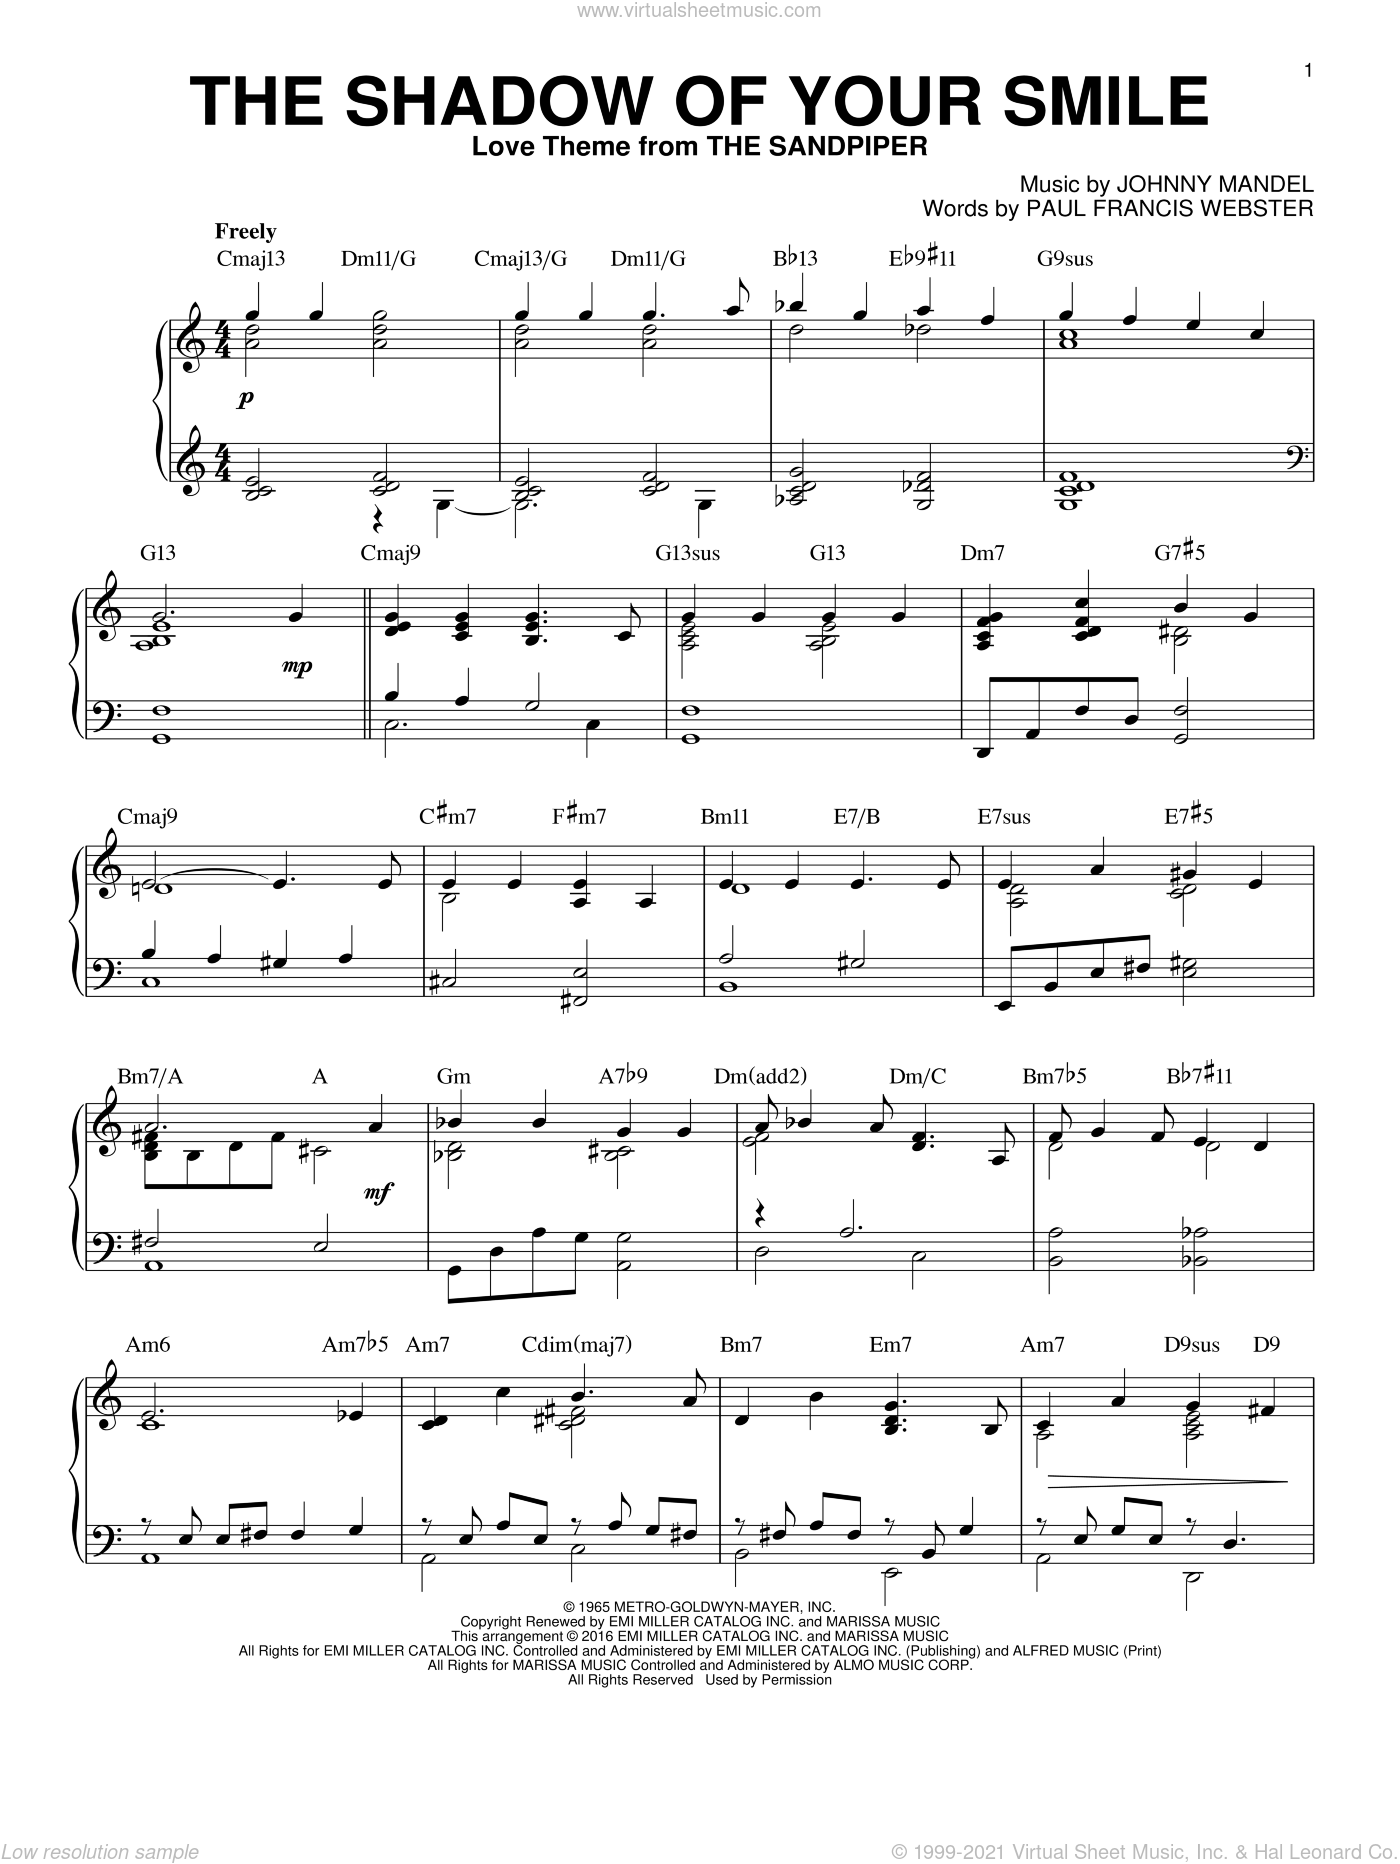 The Shadow Of Your Smile sheet music for piano solo by Paul Francis Webster and Johnny Mandel, intermediate skill level